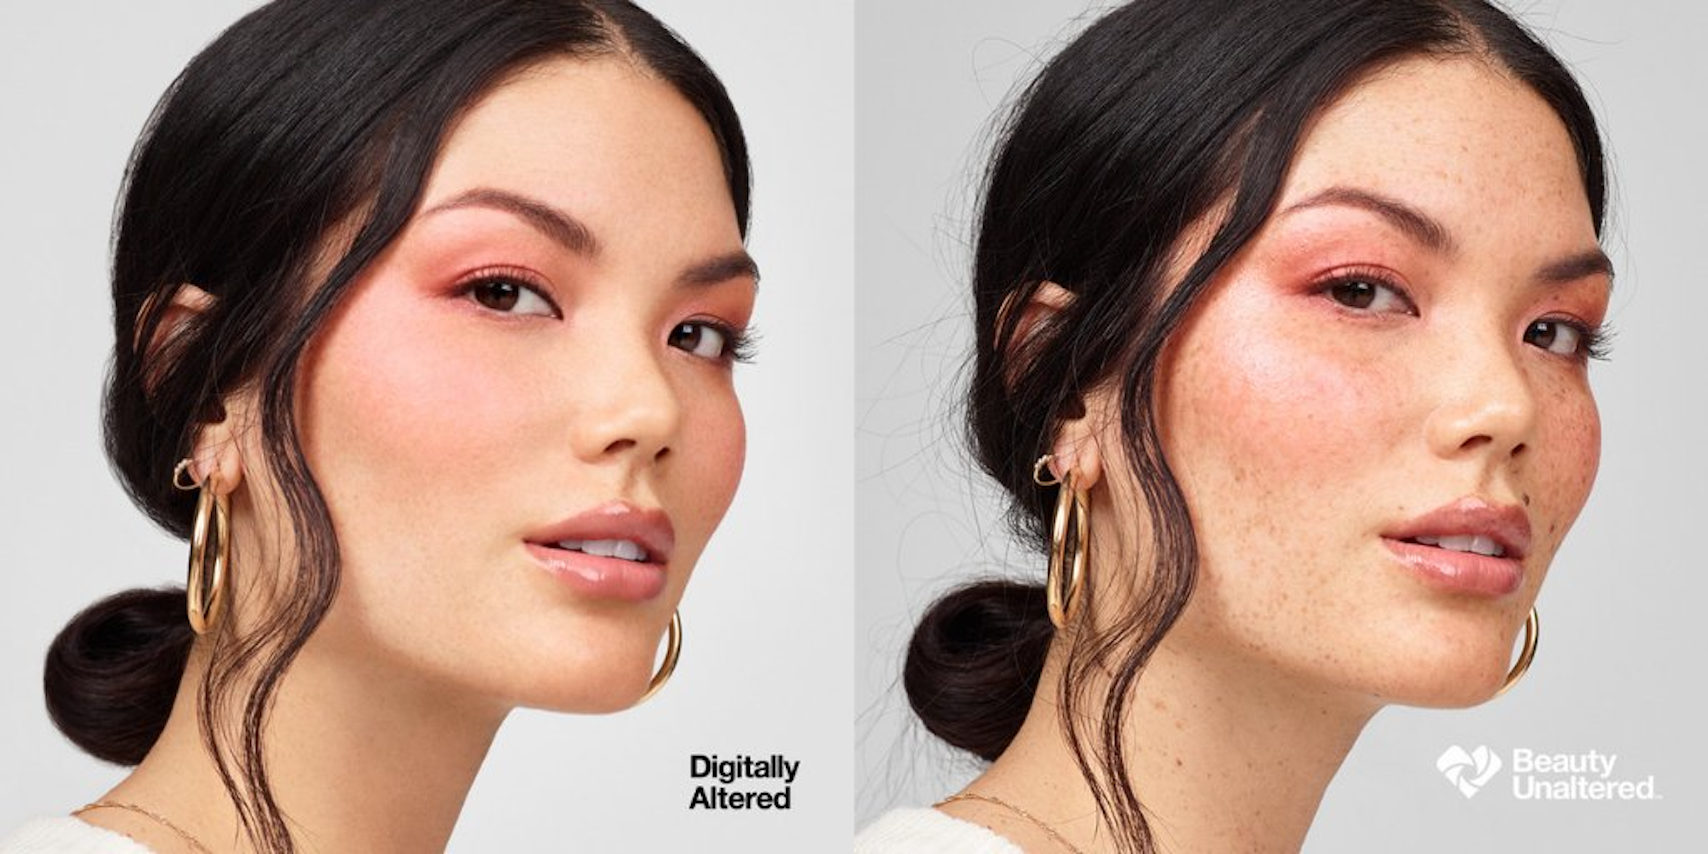 CVS advertisement showing a digitally altered female face on left side and picture of the same face unaltered on the right